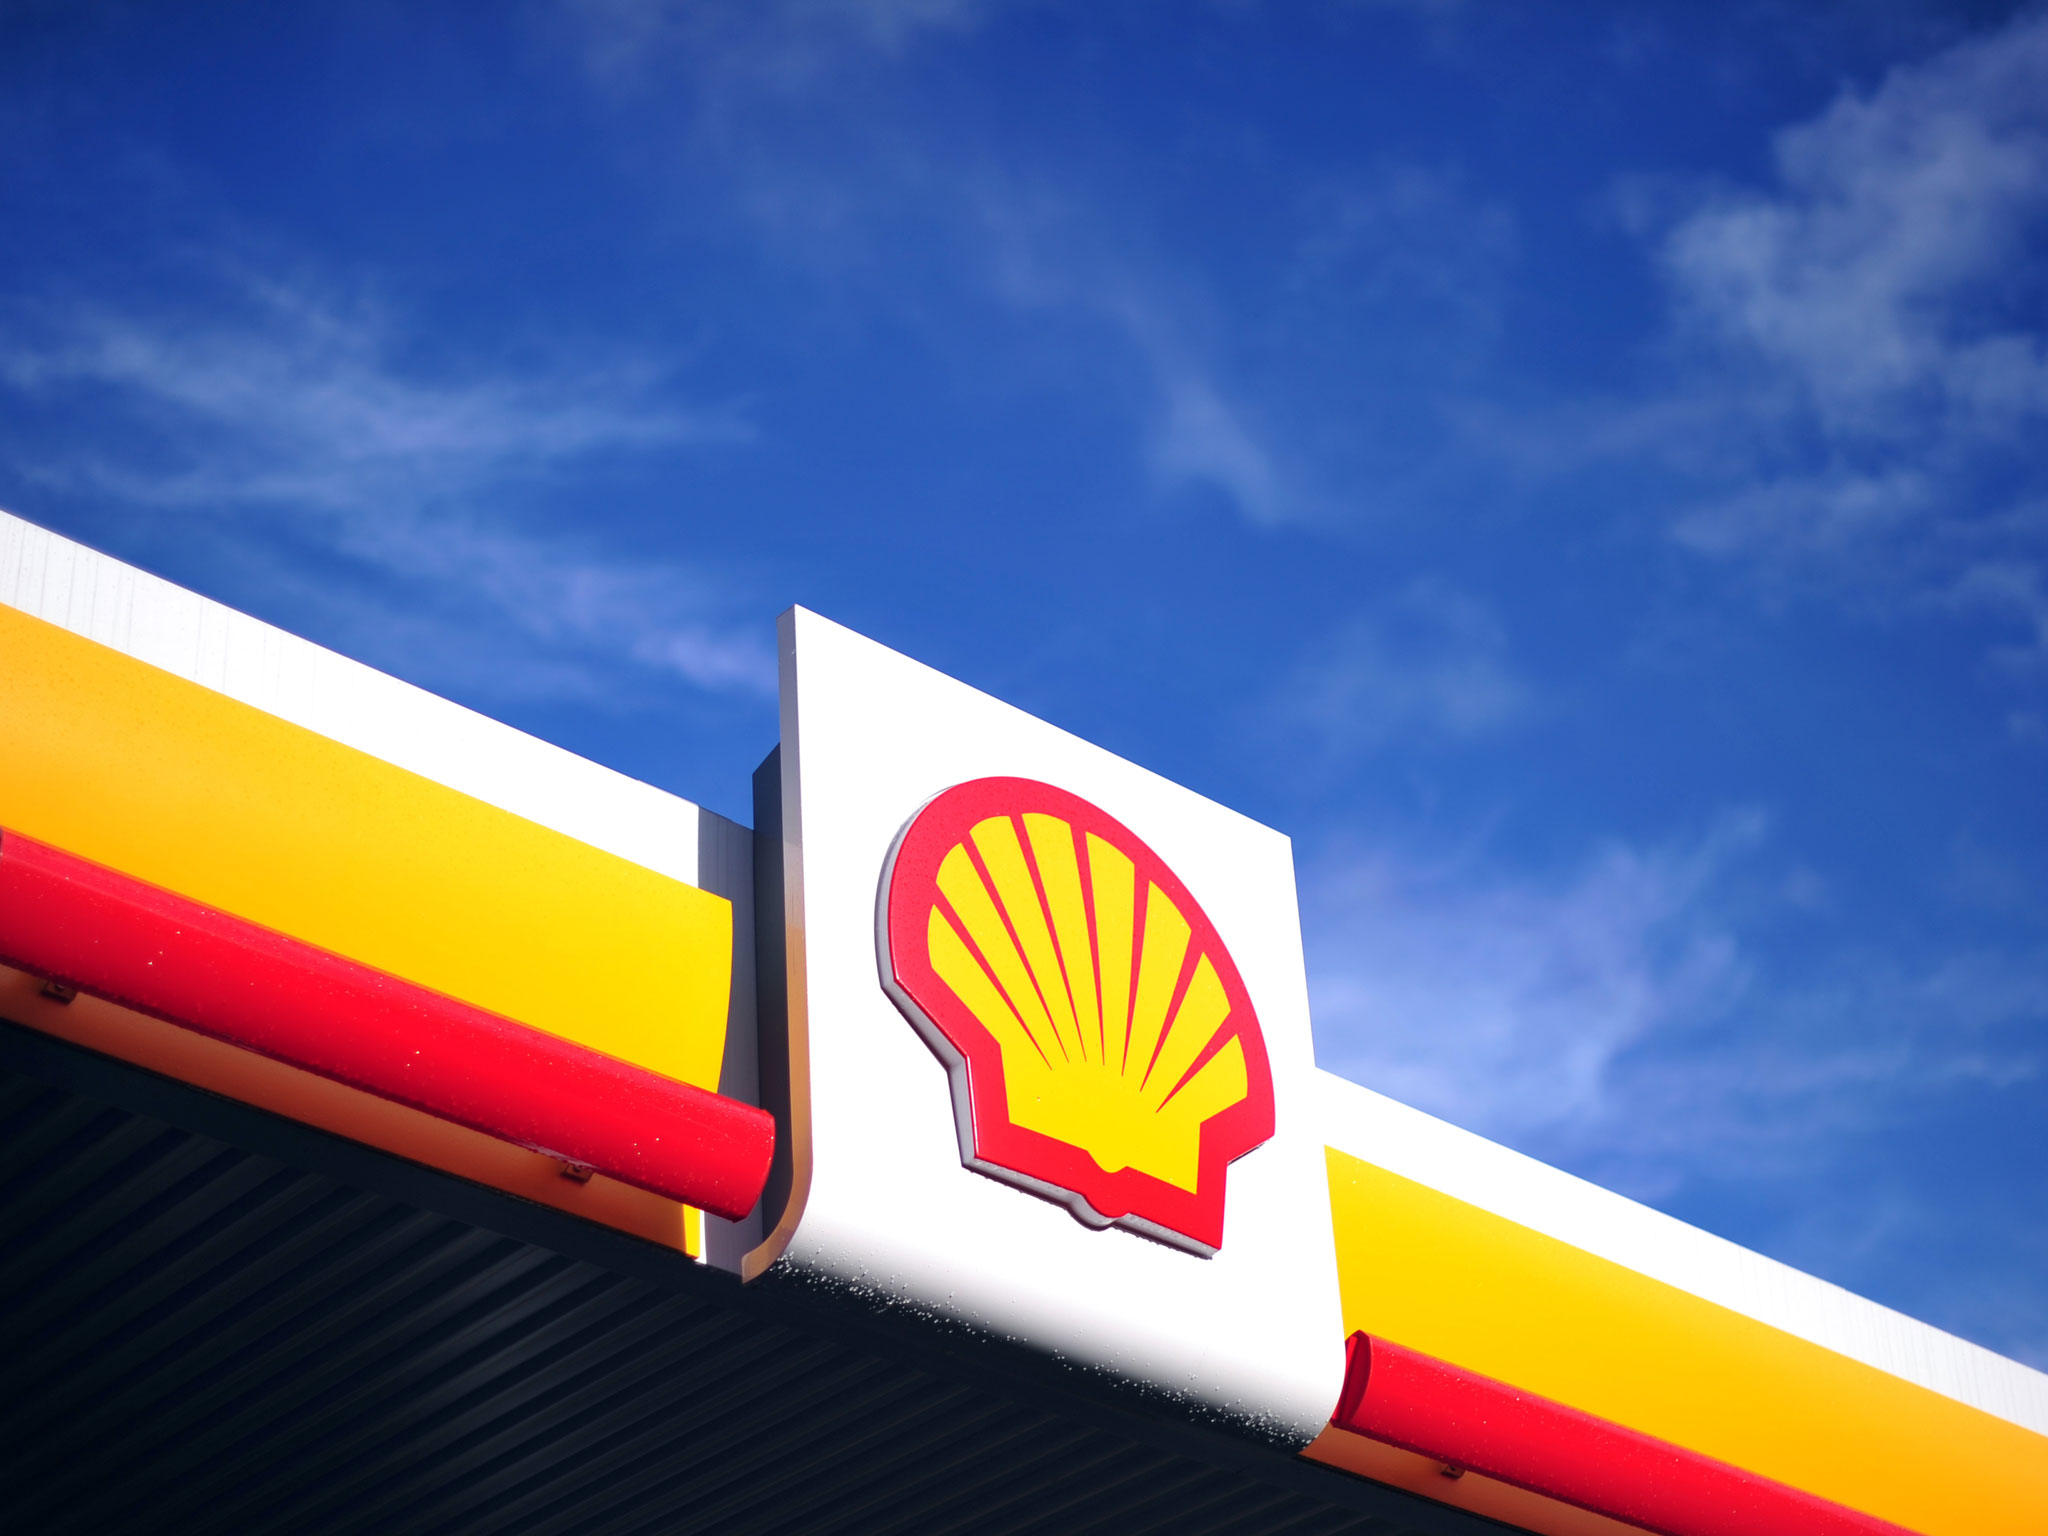 Shell Commission Agent Service Station Sites in Queensland